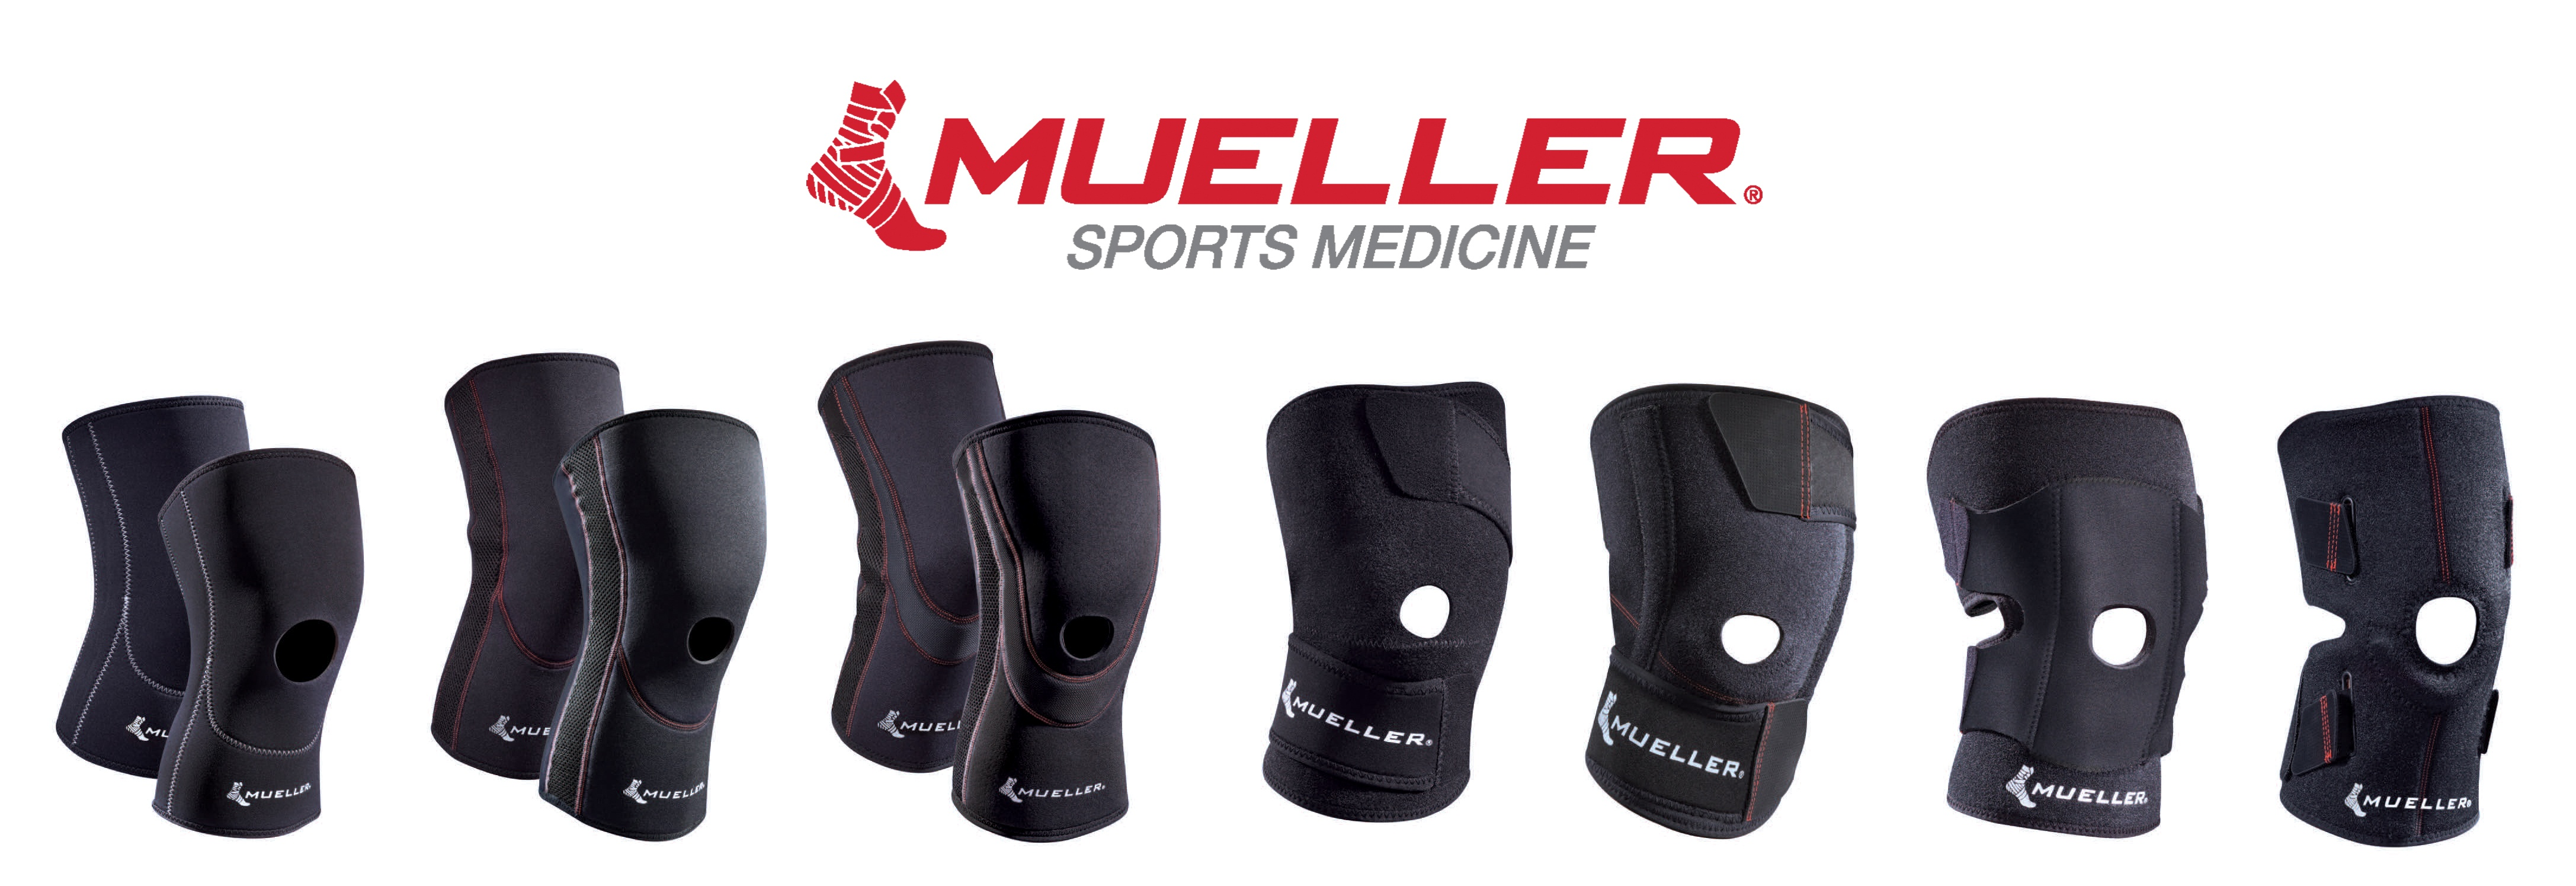 Next Generation of Knee Support